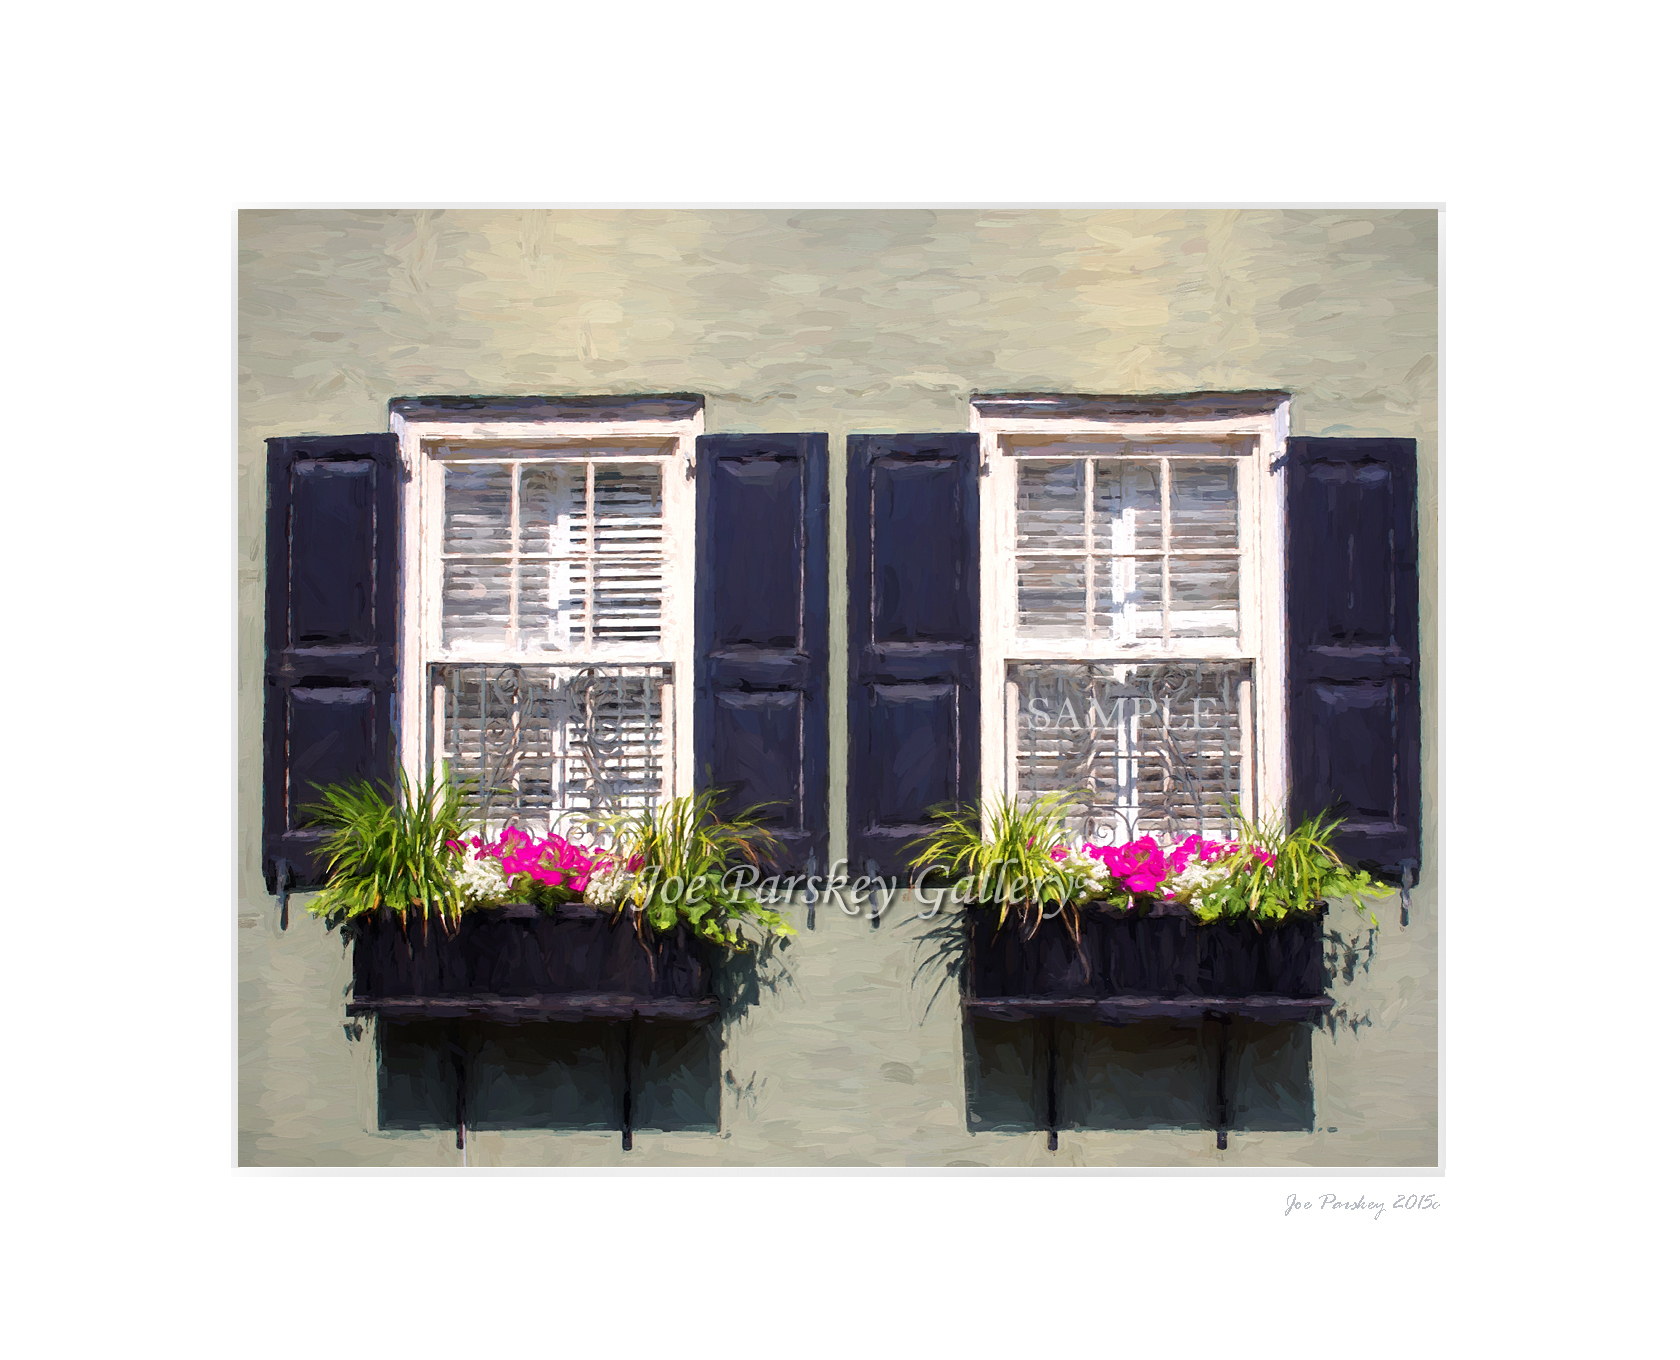 Home Decor Charleston Sc.Window Boxes Charleston Sc Rainbow Row Photo Art Home Decor Archival Print By Joe Parskey Sold By Joe Parskey Gallery